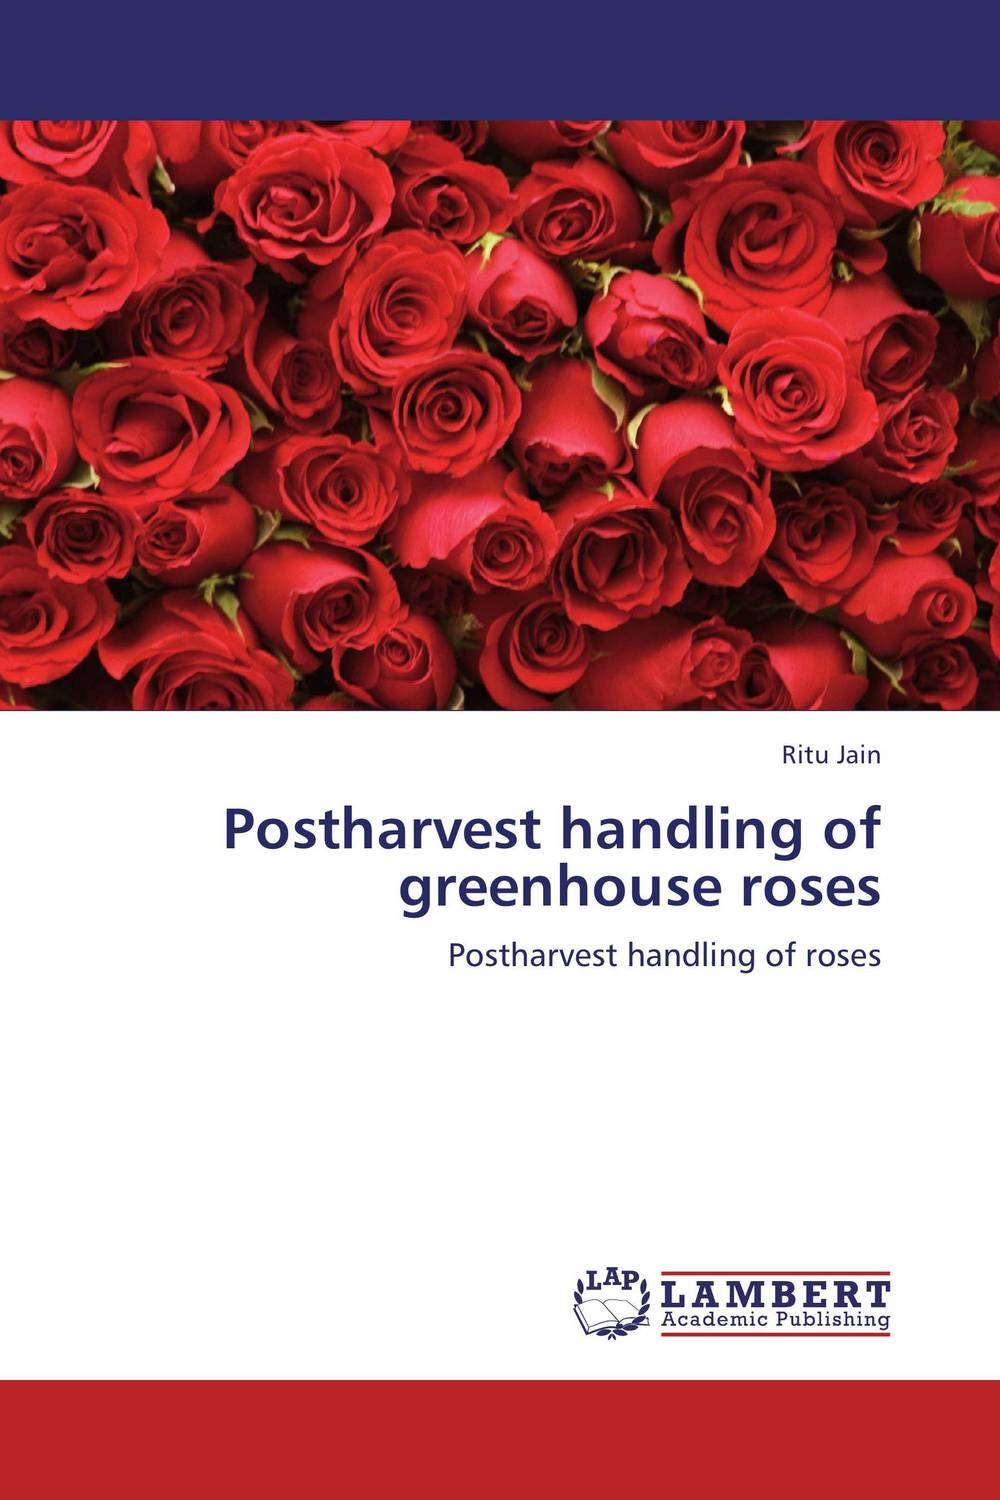 Postharvest handling of greenhouse roses